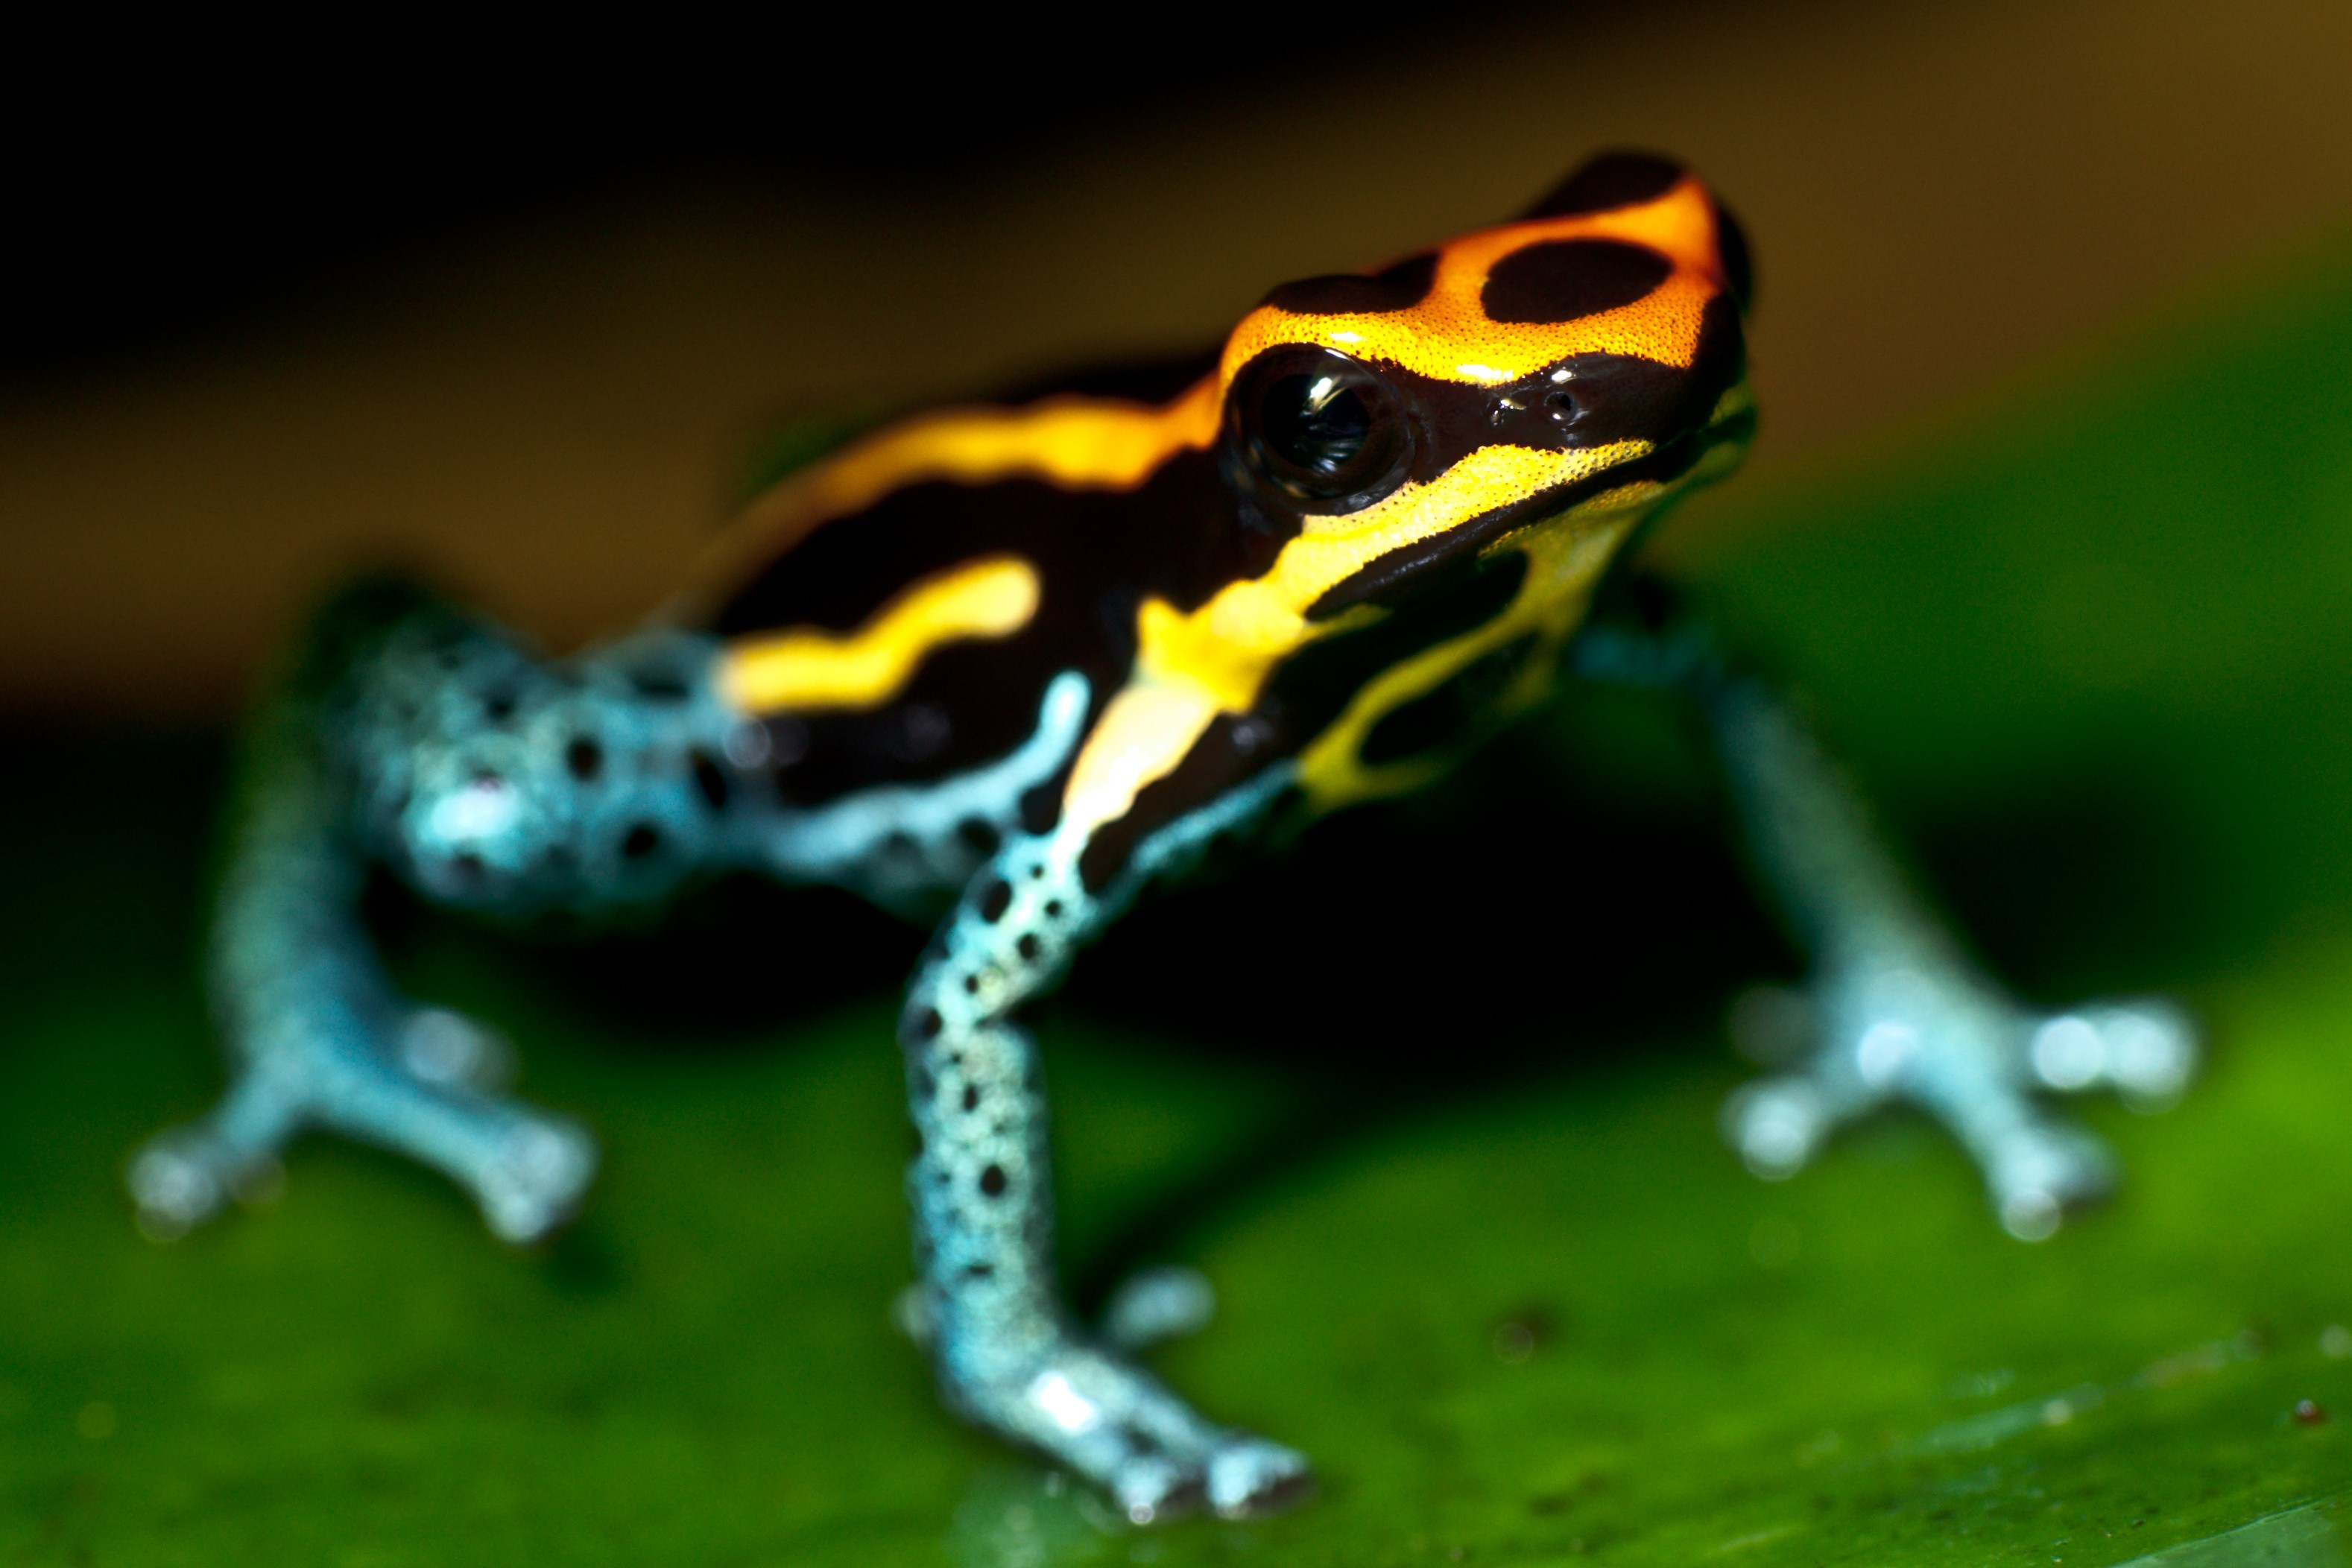 Poison dart frog photo Rainmaker Costa Rica - River Walk and Canopy Bridge